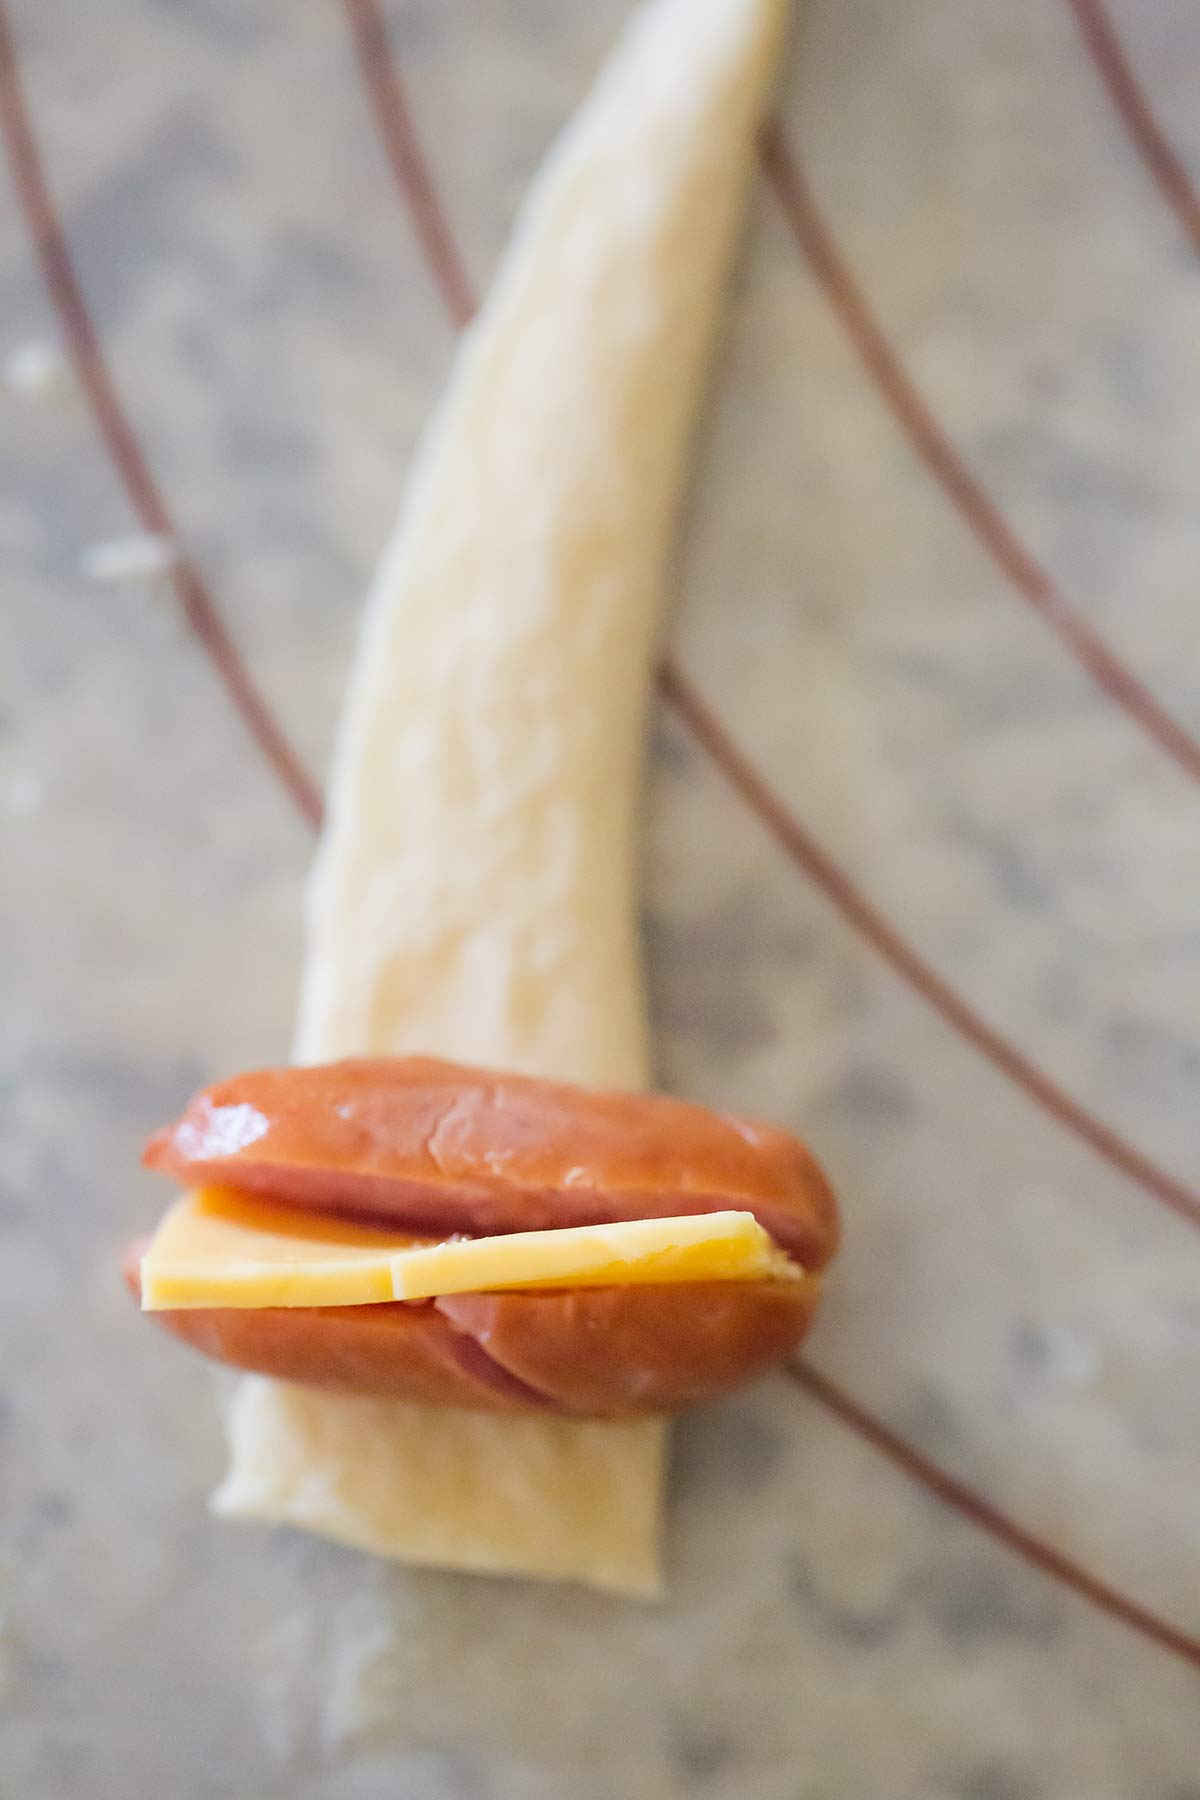 Mini hot dog with cheese stuffed inside sitting on strip of crescent roll dough.